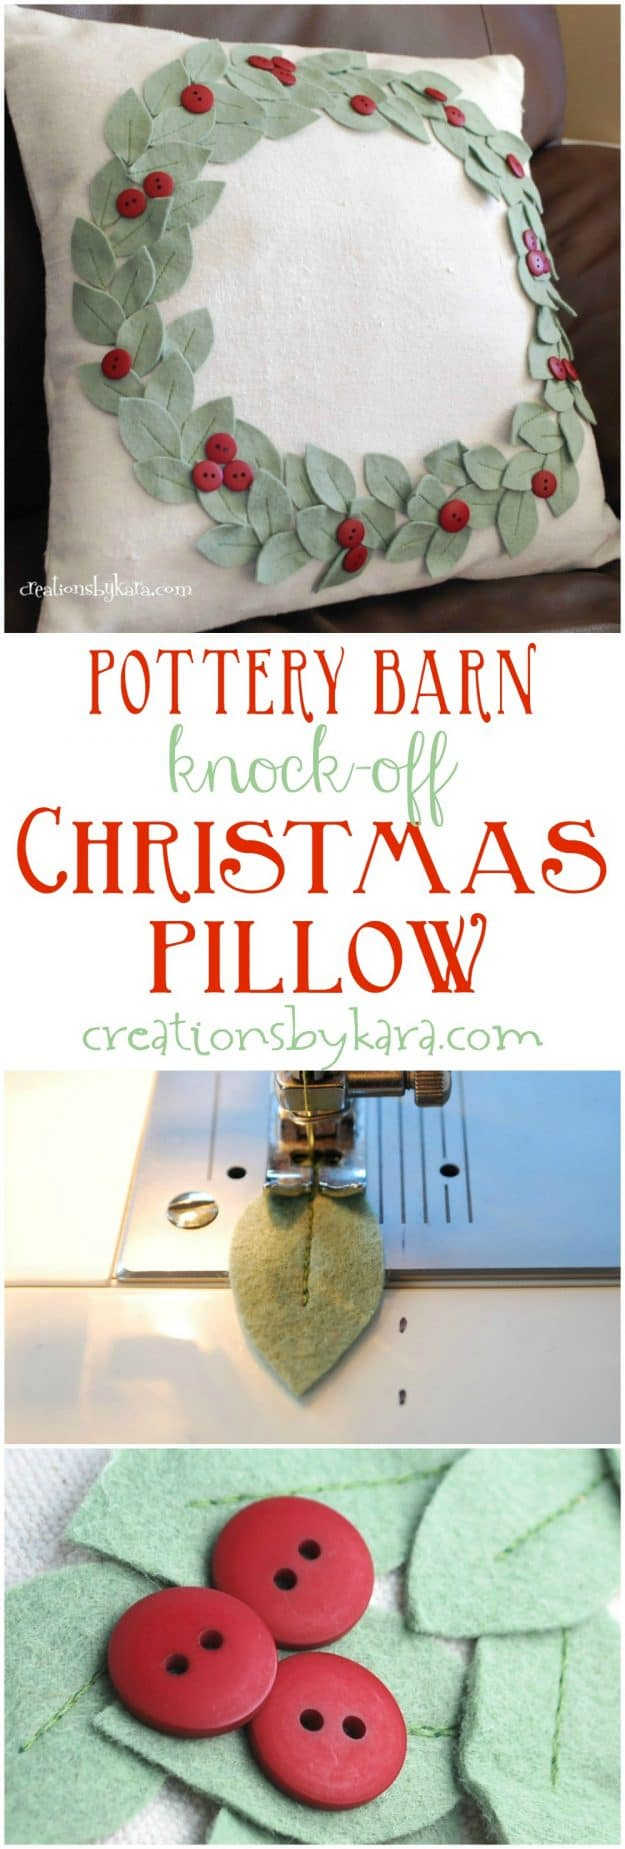 pottery barn knockoff pillow for christmas